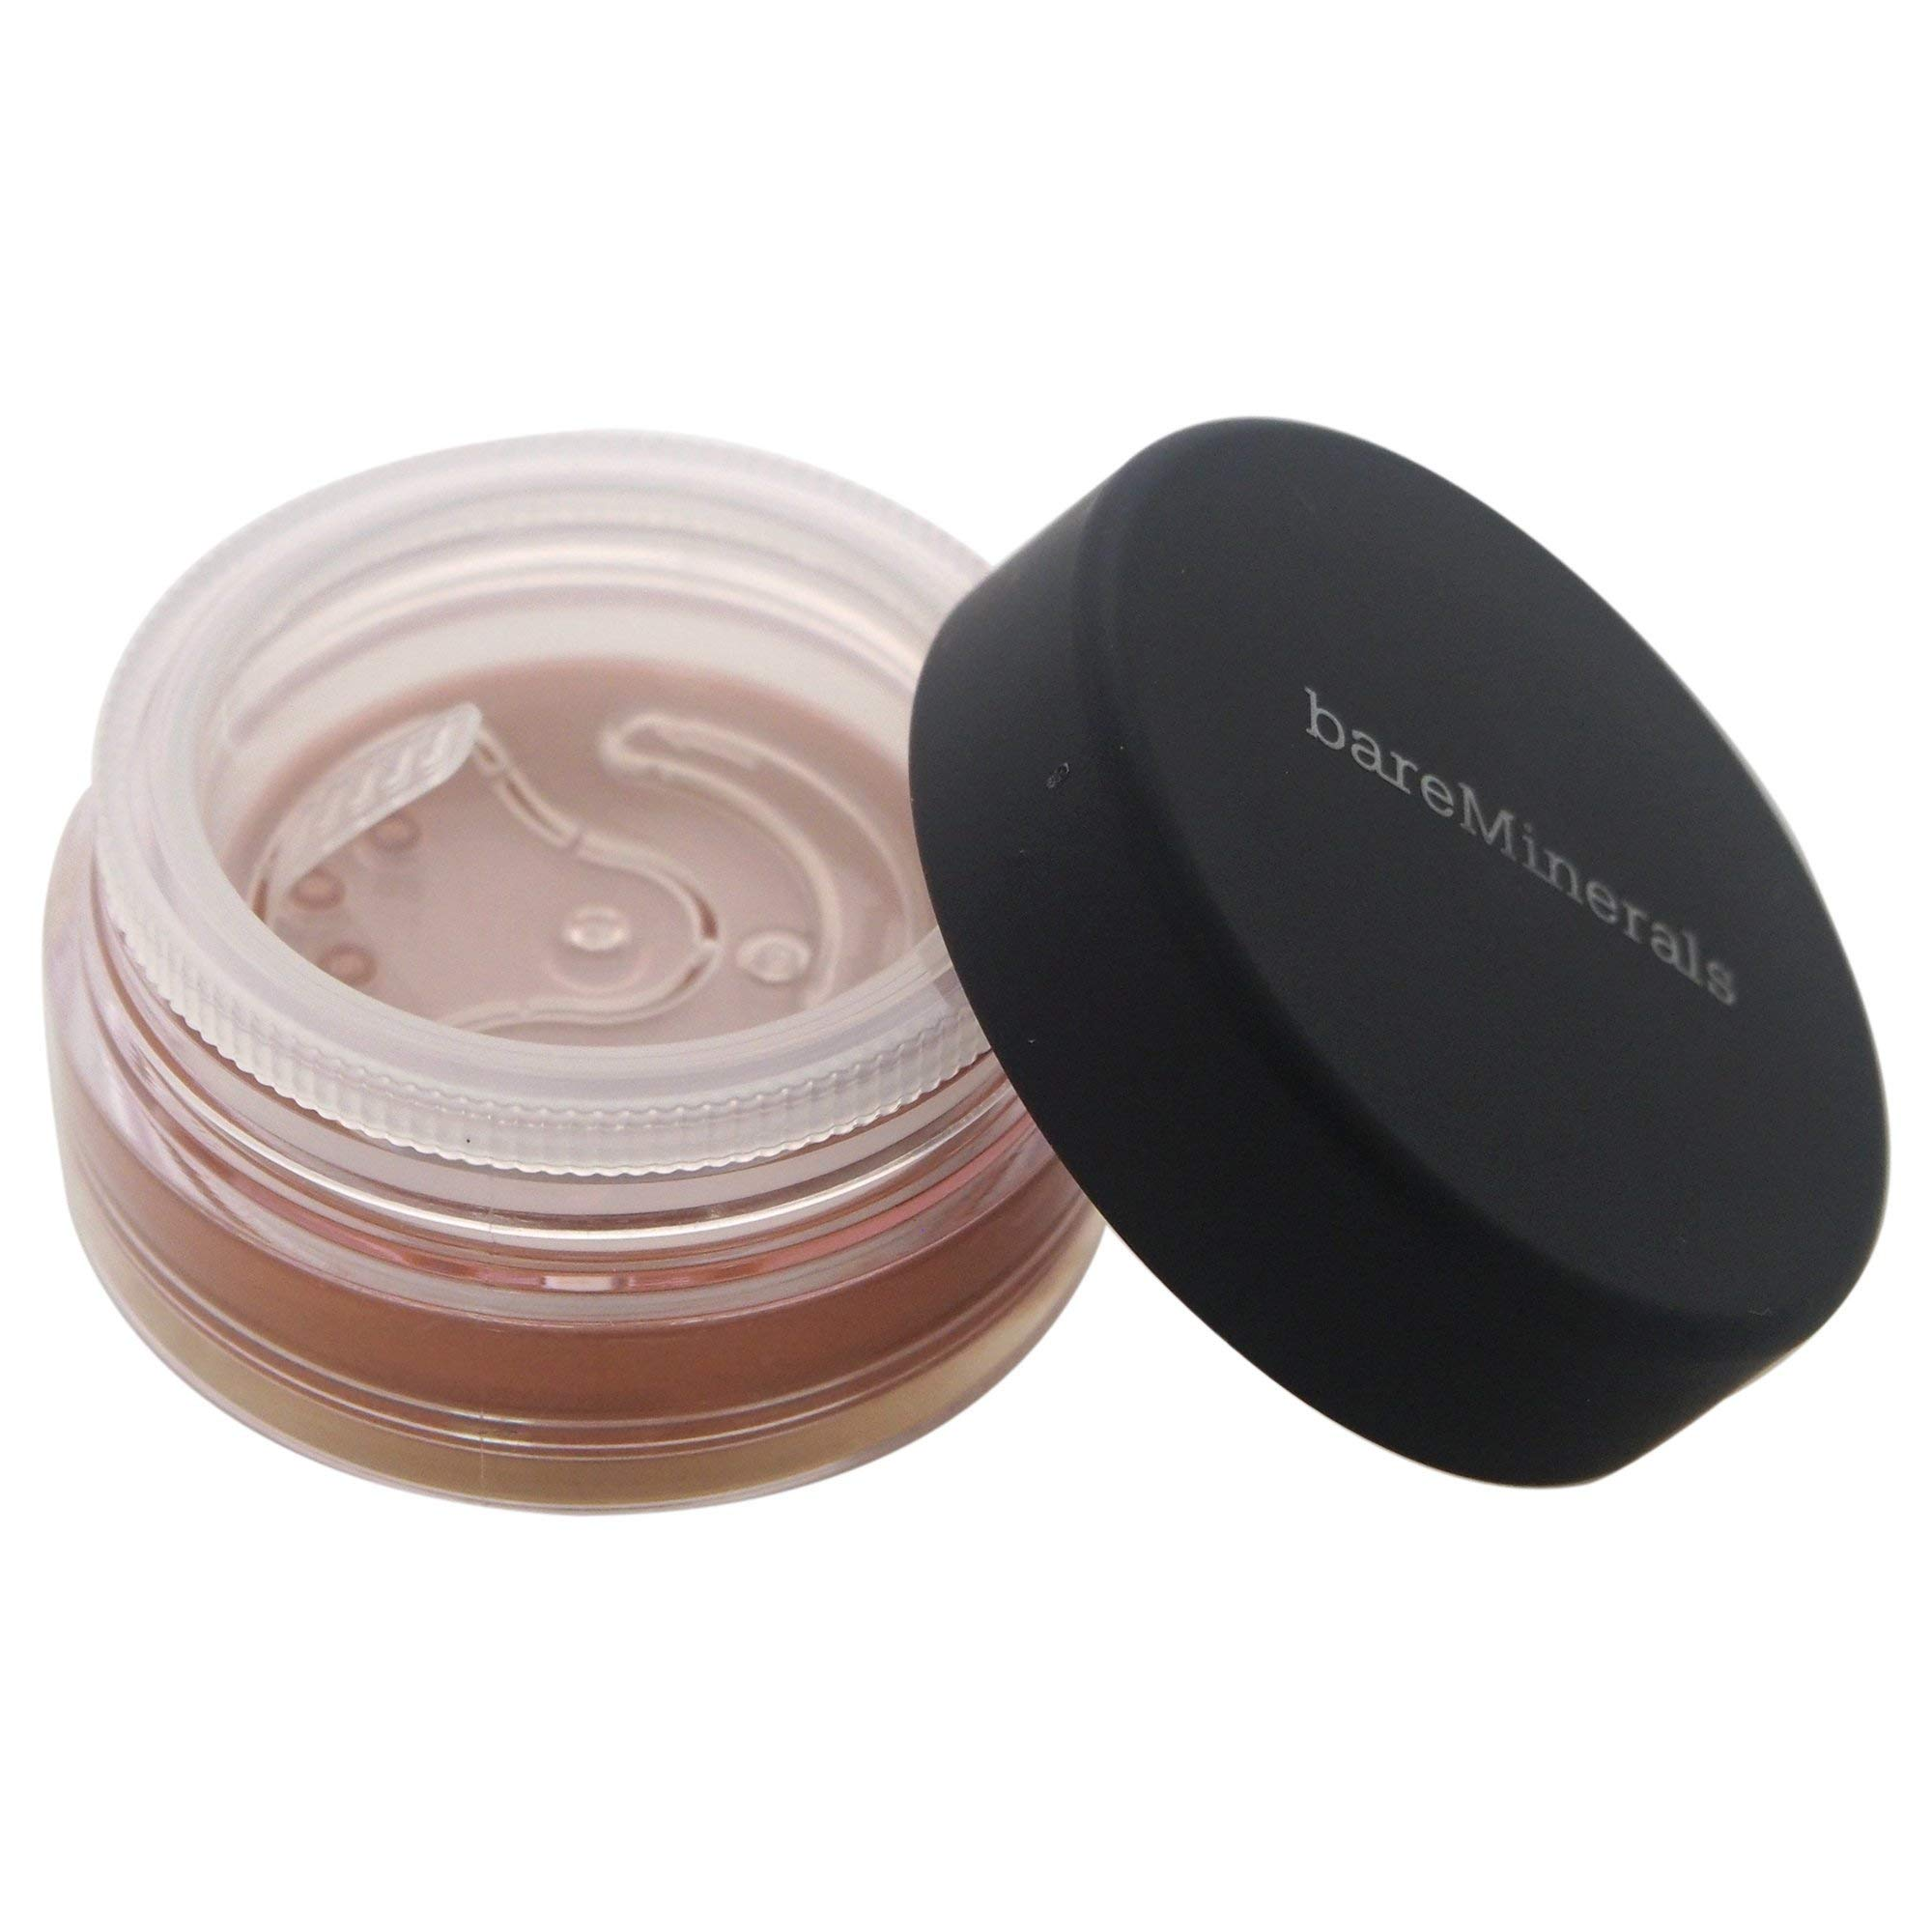 Bare Minerals All Over Face Powder, Color Warmth, 0.05 Ounce by bare Minerals